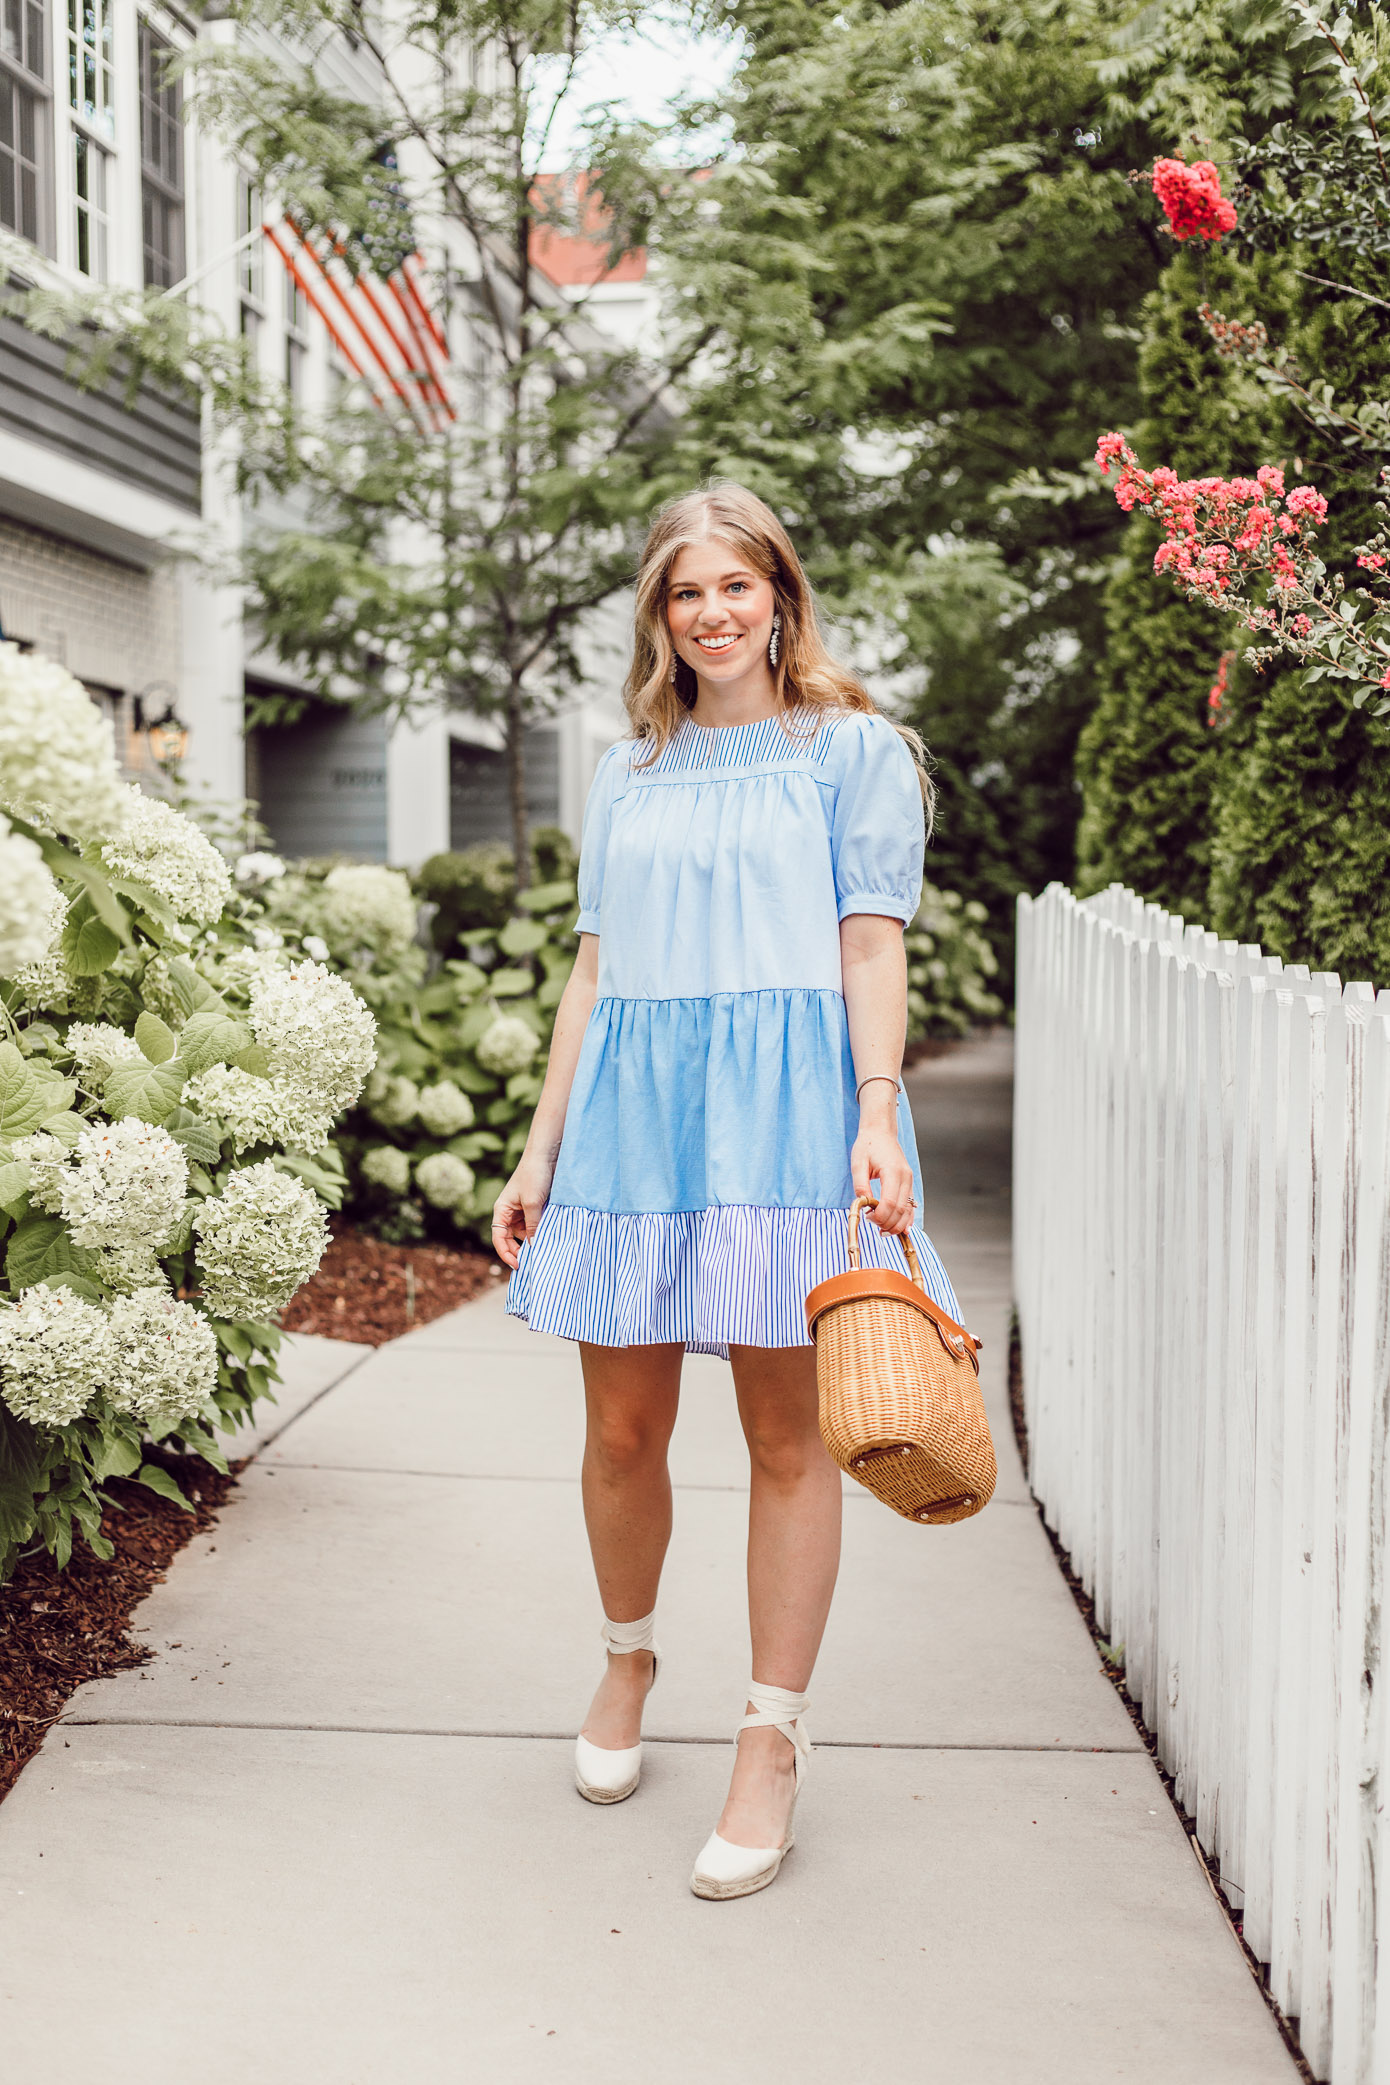 Everyday blue and white summer dresses that can be worn to any occasion | English Factory Summer Dress | Louella Reese